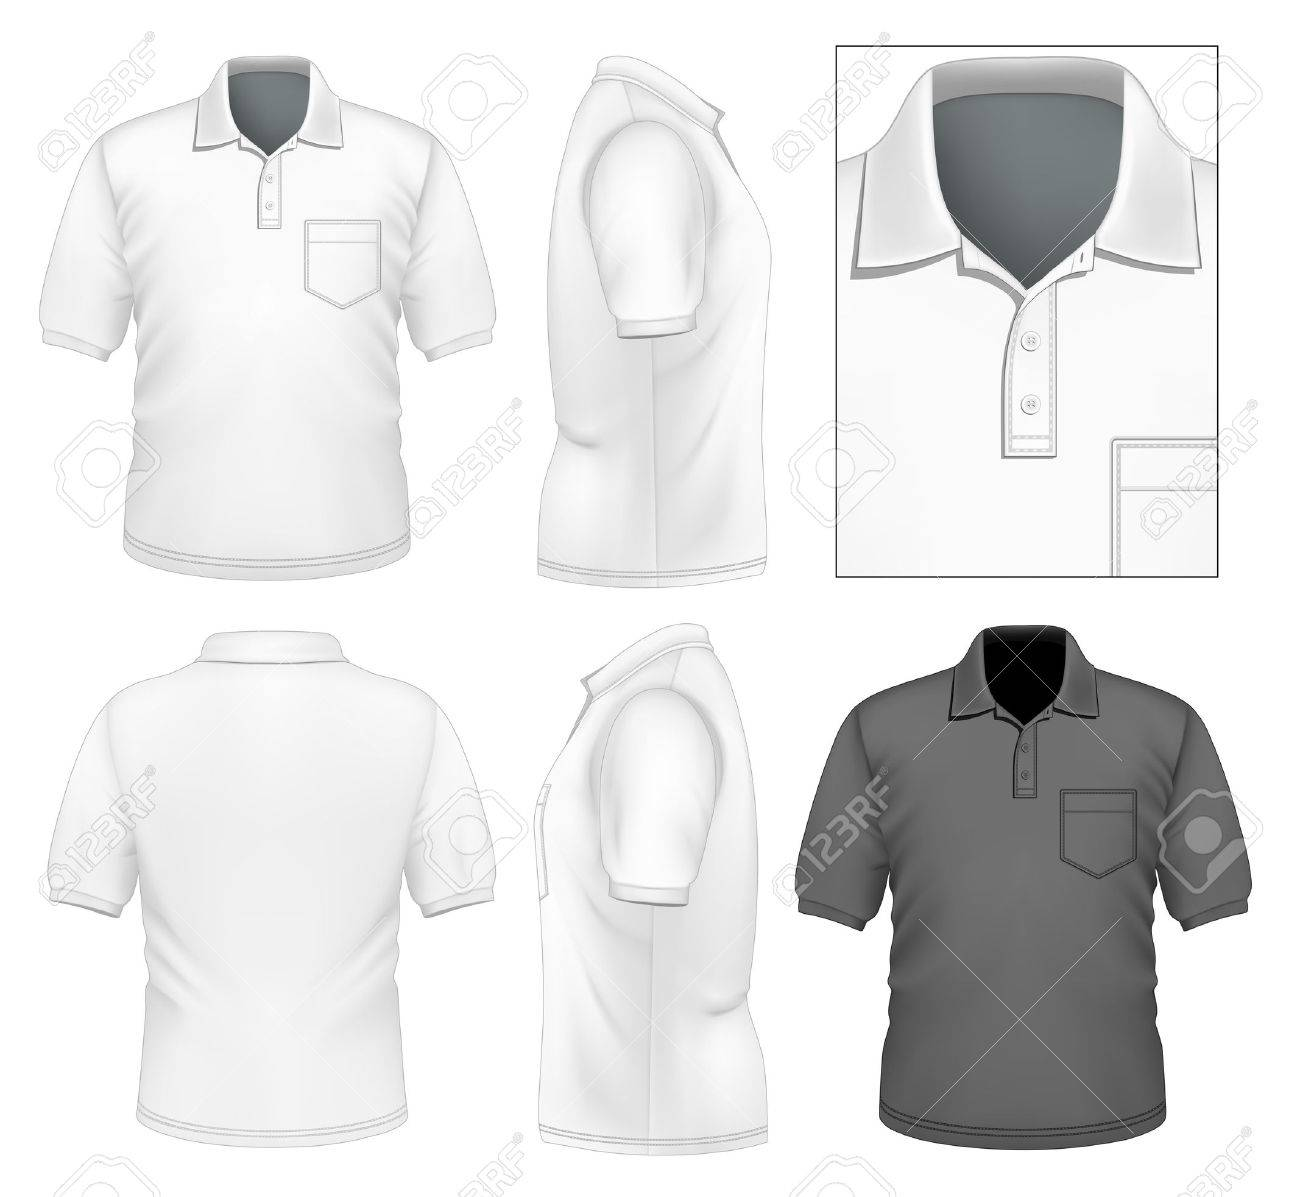 Photo Realistic Vector Illustration Men S Polo Shirt Design Royalty Free Cliparts Vectors And Stock Illustration Image 23237327